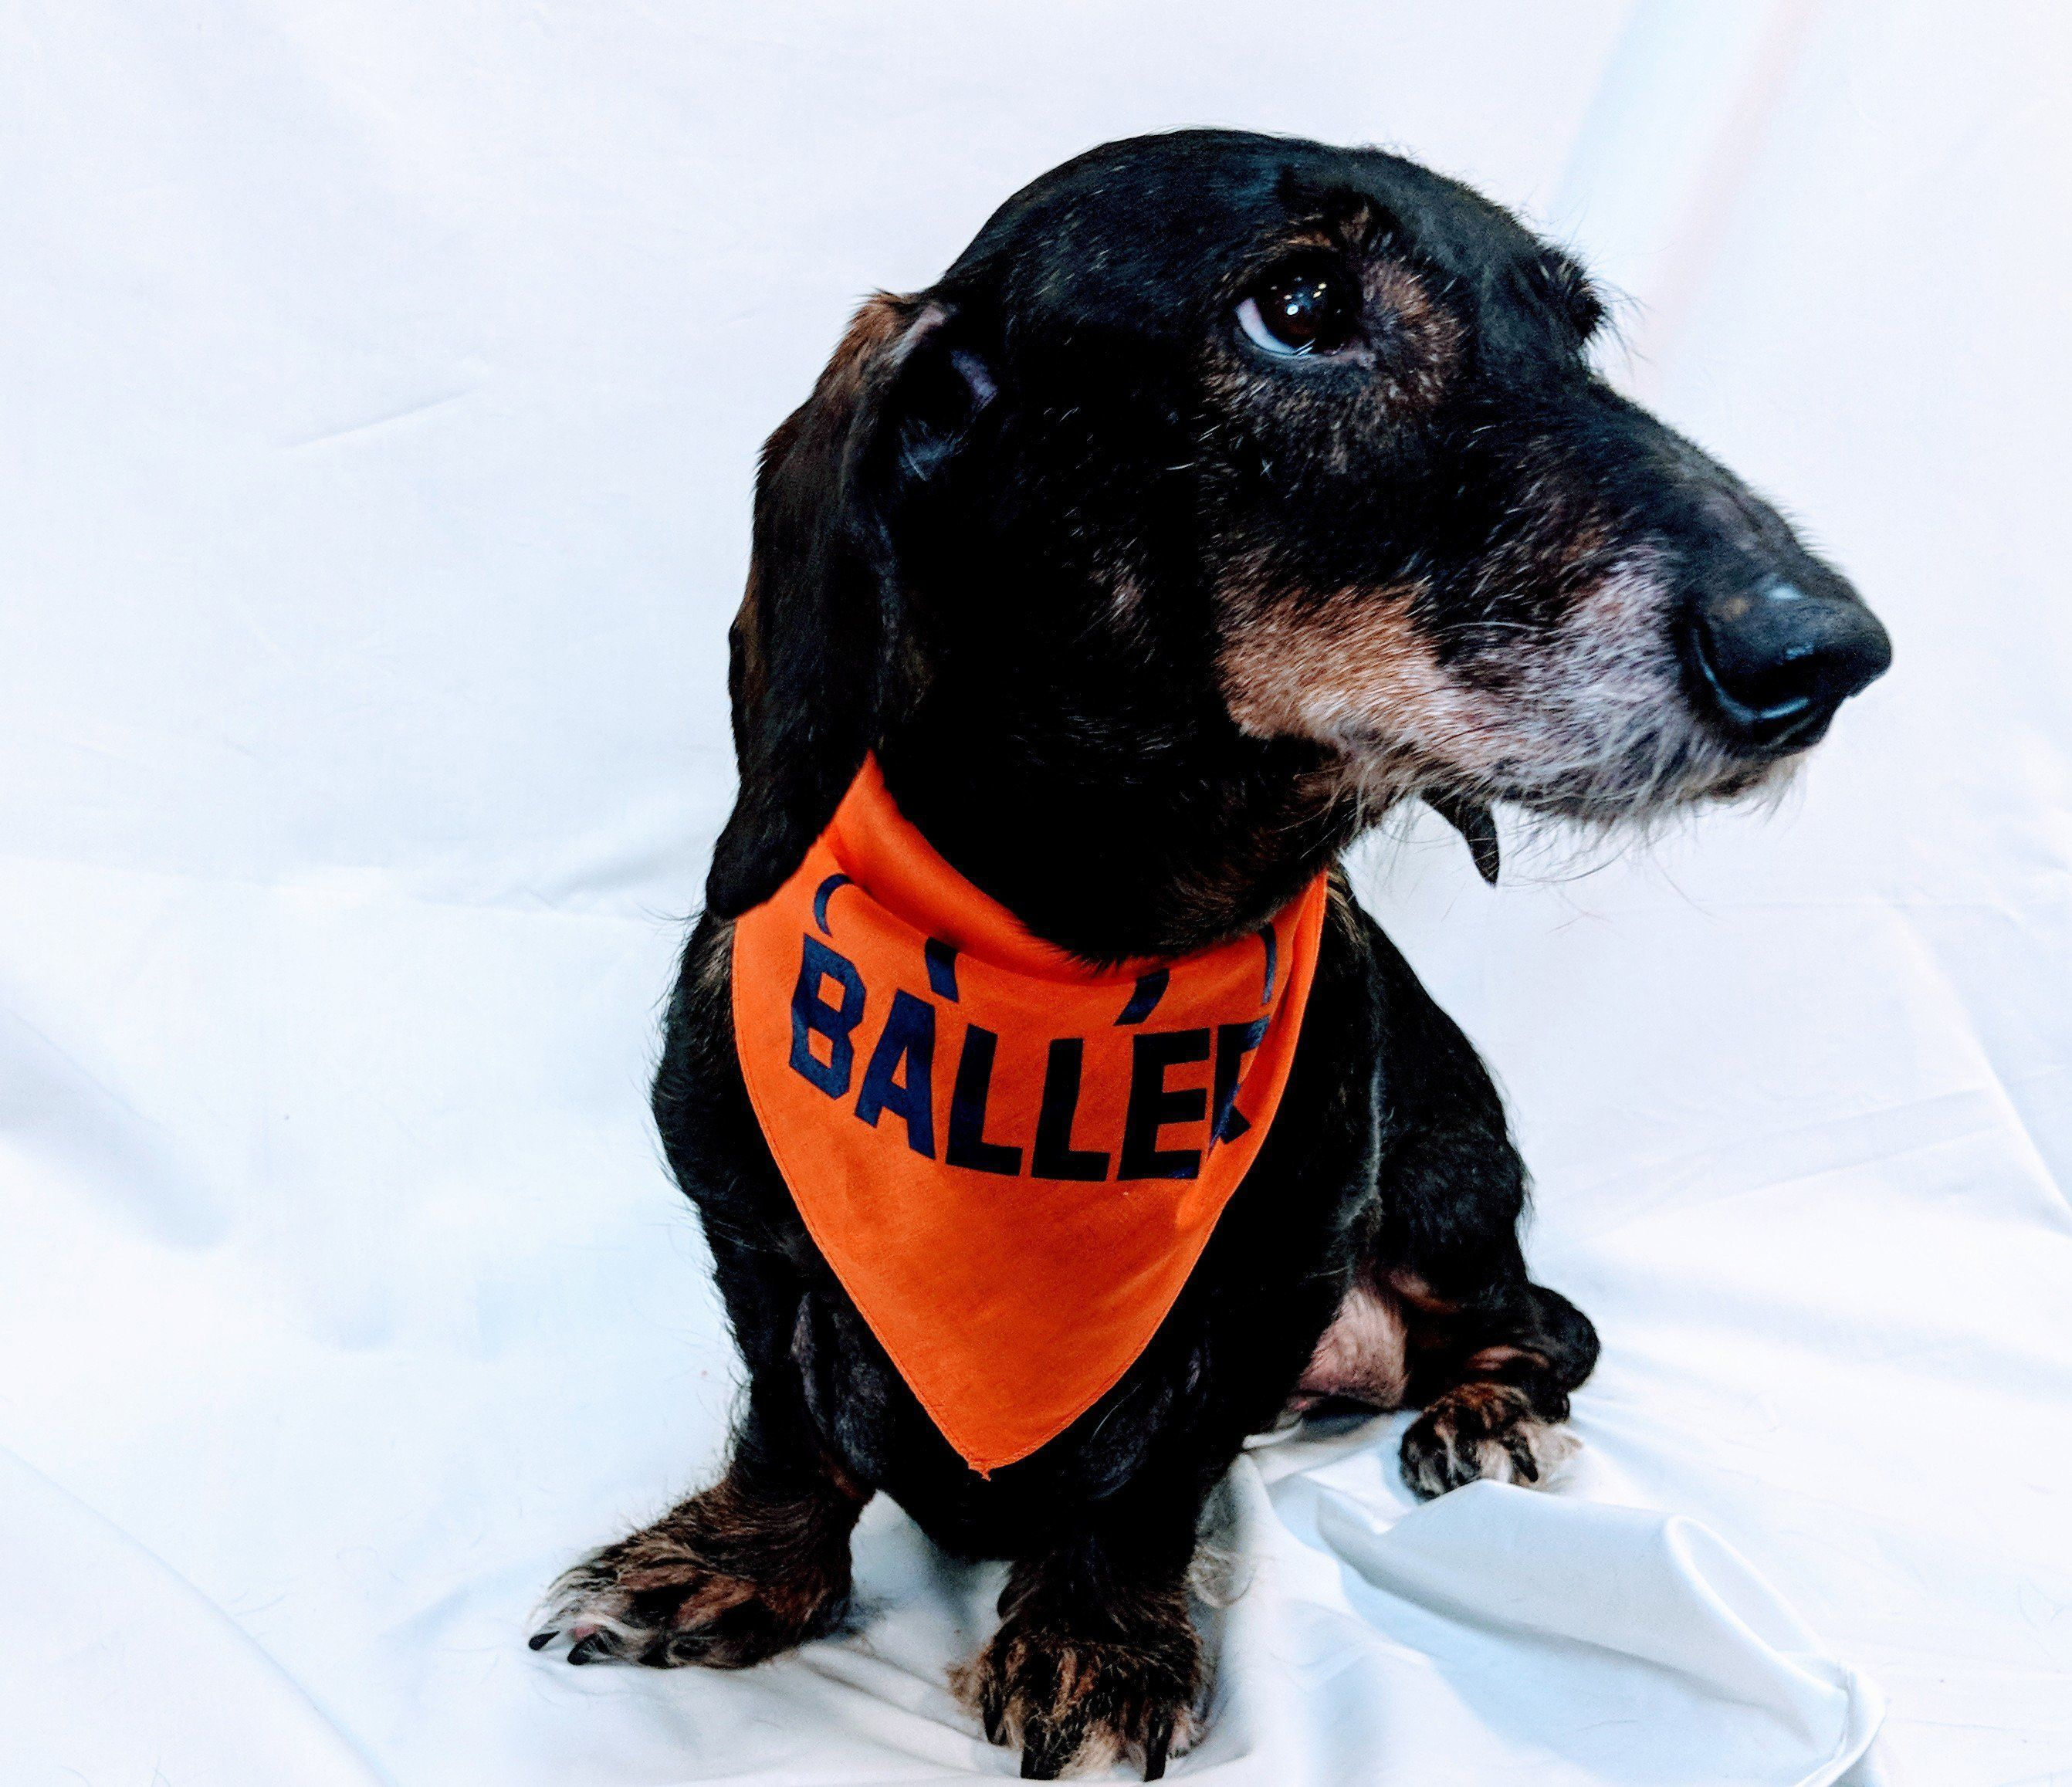 6debeba58d Have you got a BALLER living in your house  These high quality dog bandanas  are